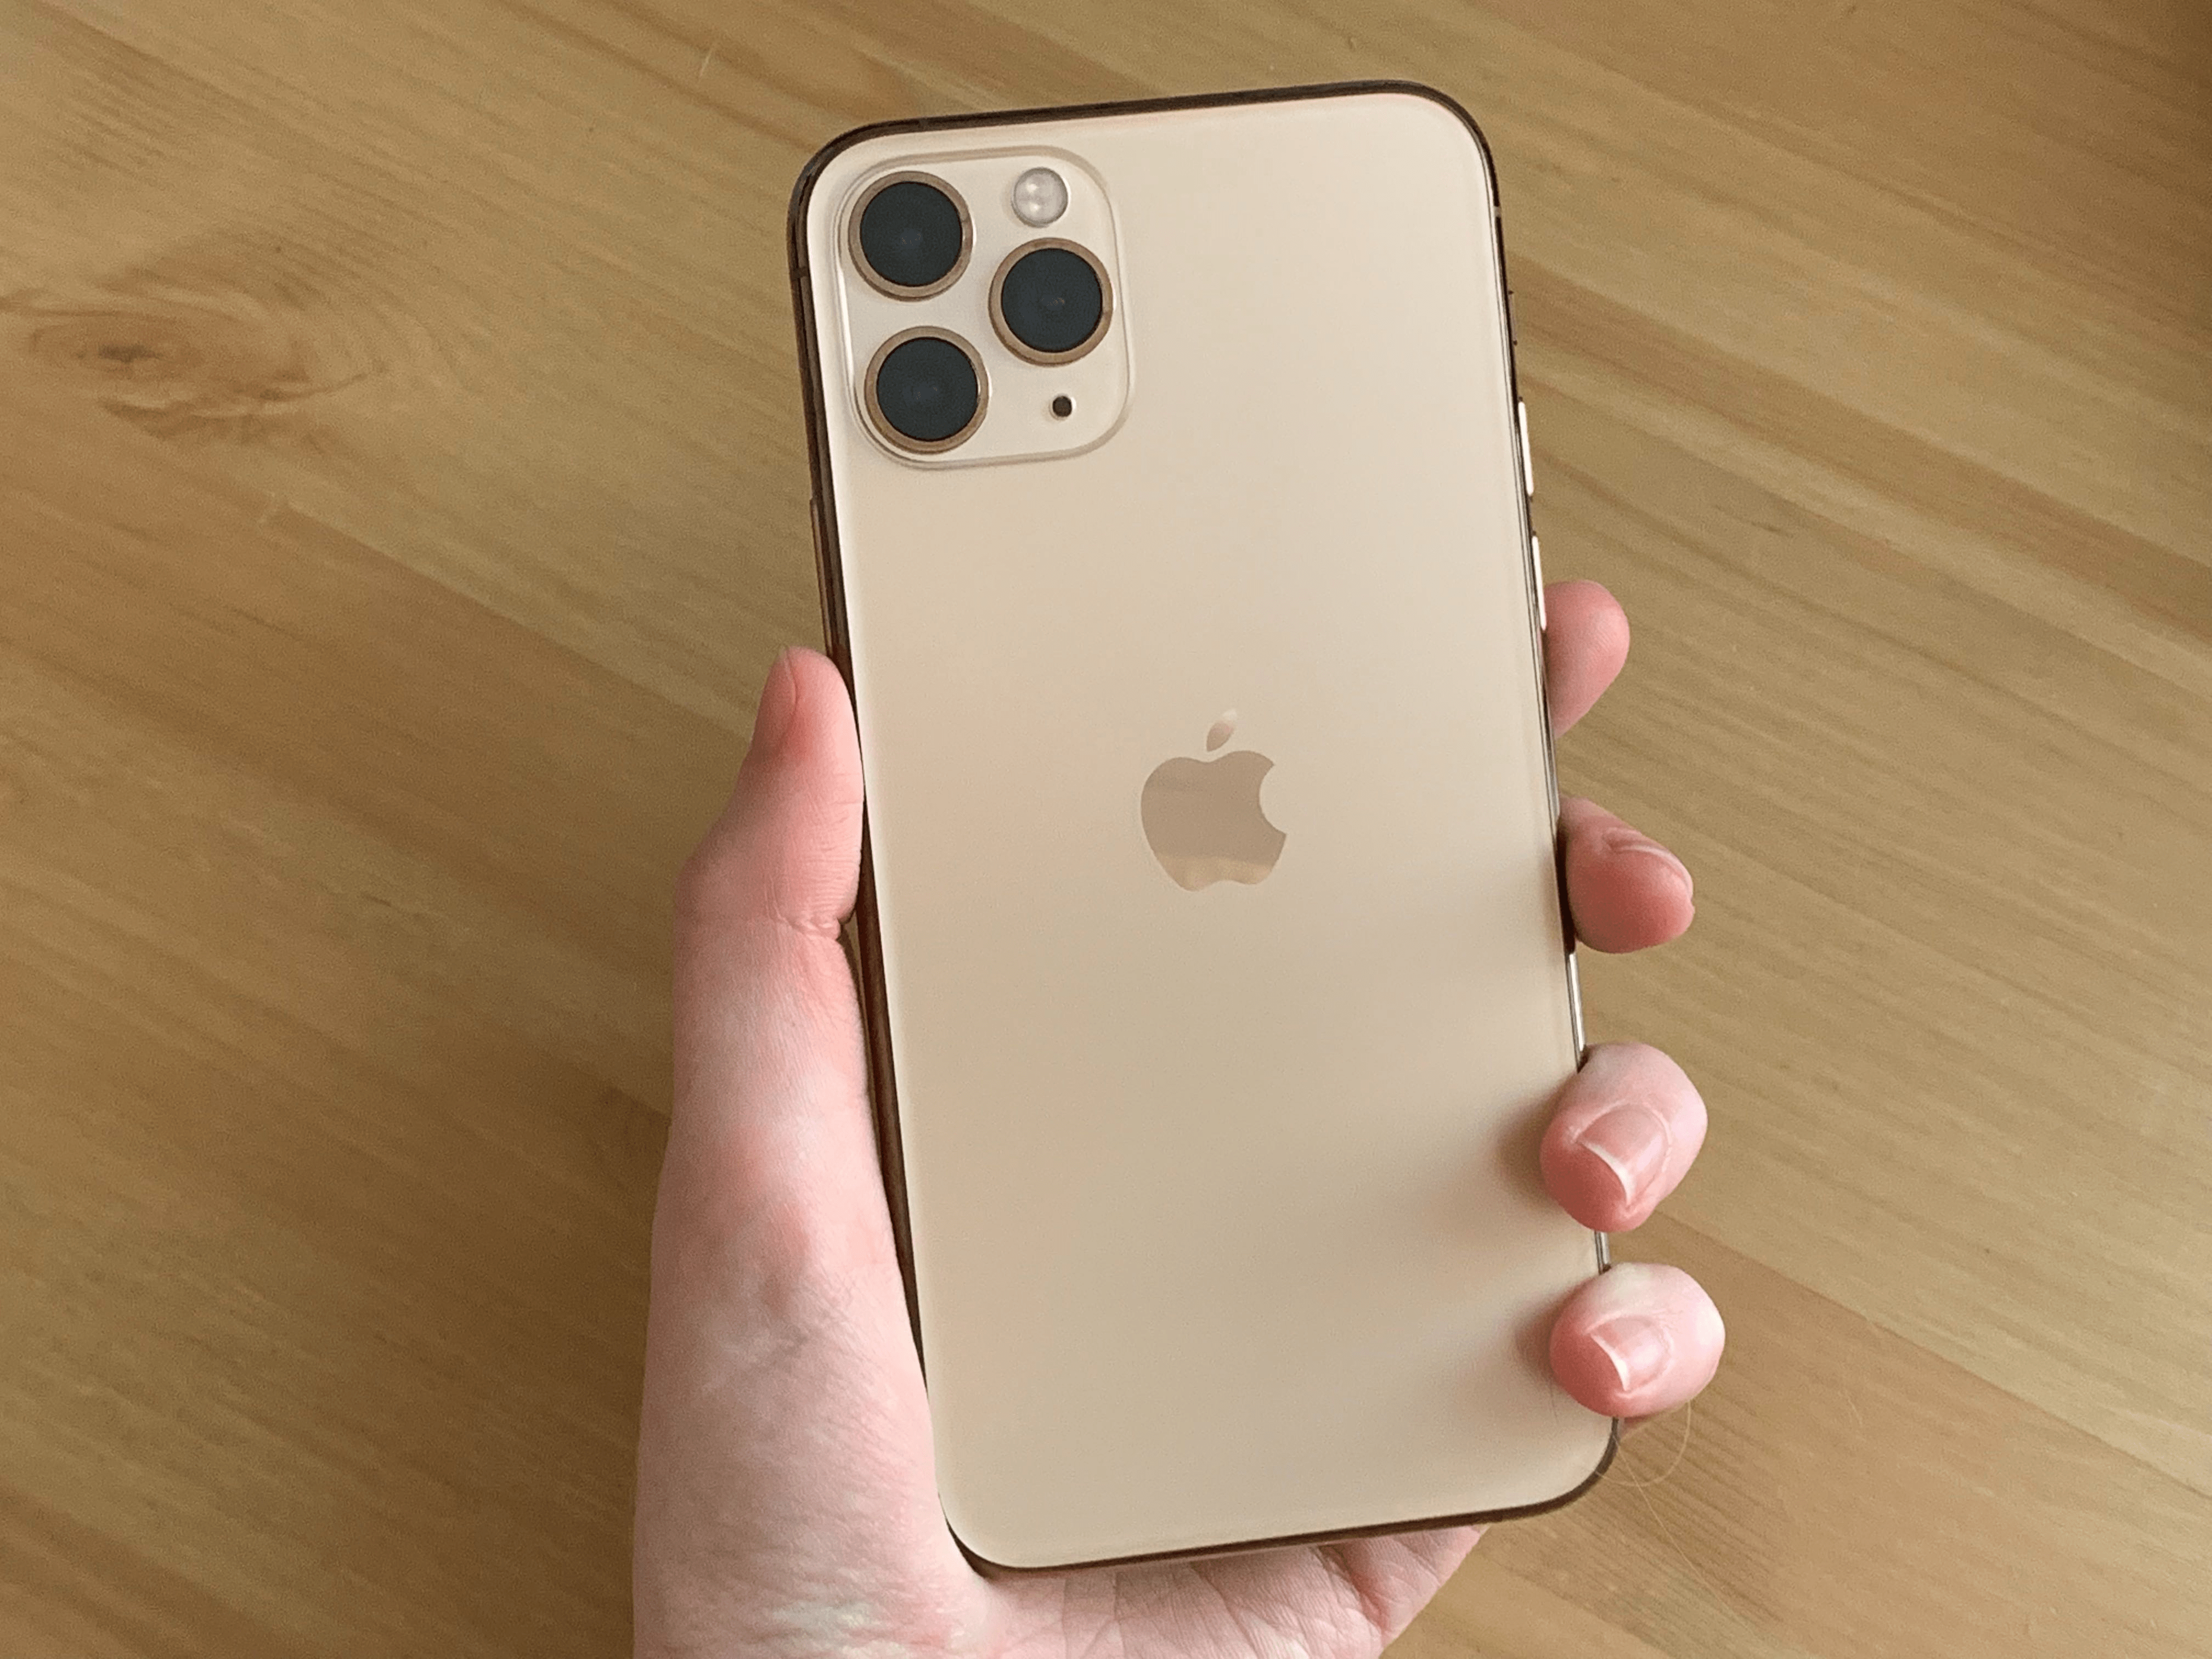 The cheapest and most powerful iPhone with iOS 12